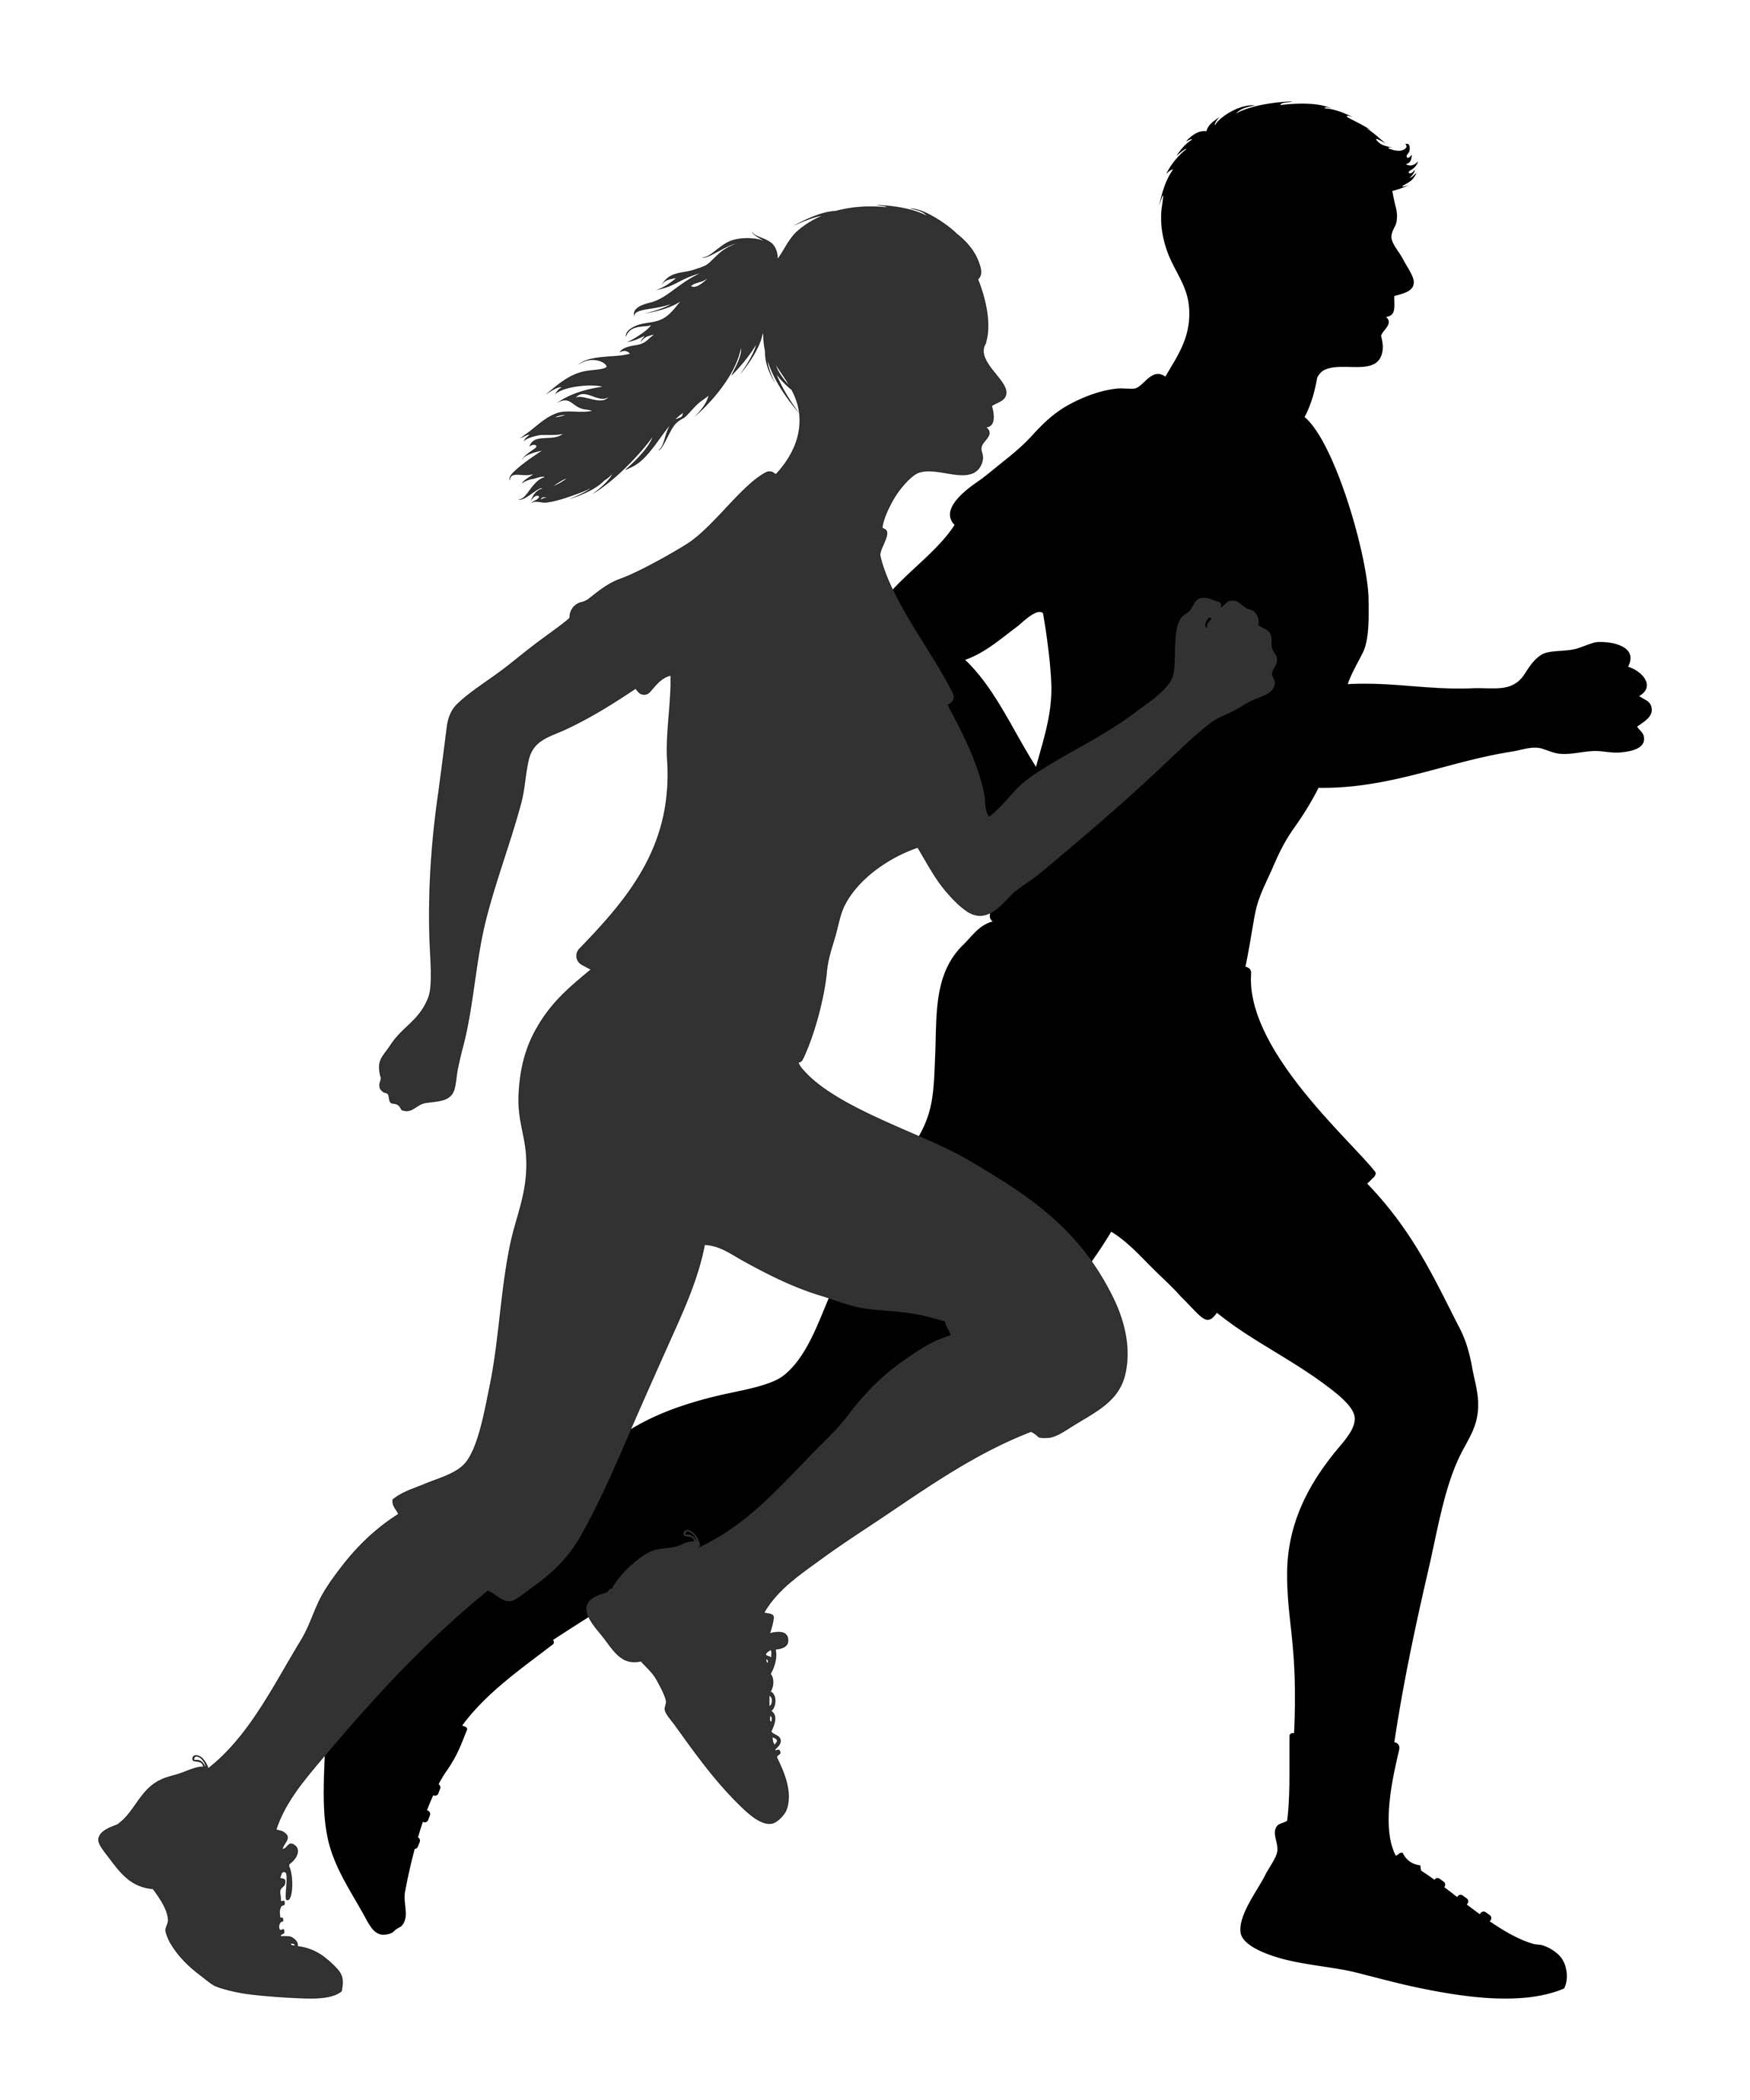 Runner clipart jogging. Exercise running clipartllection cliparting